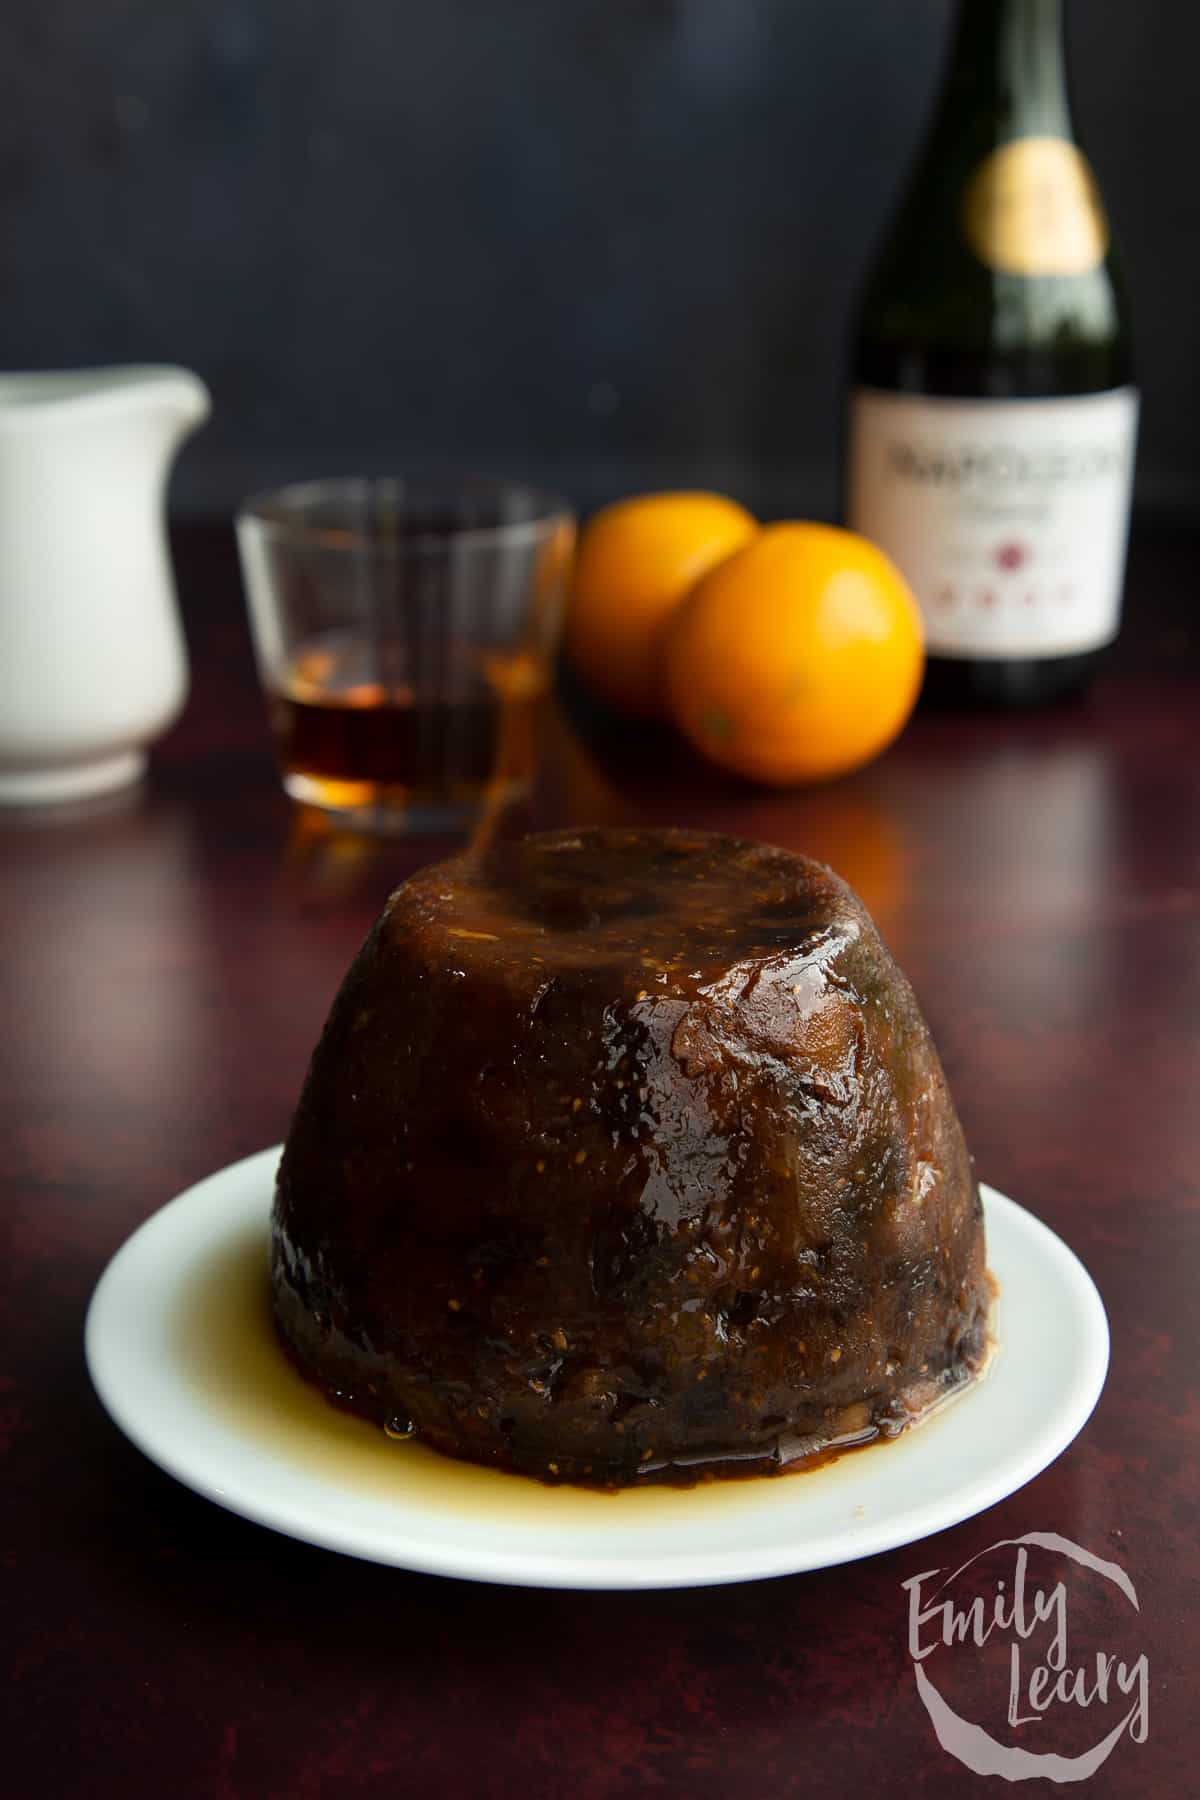 Steamed vegan Christmas pudding on a small white plate. It has lit whisky on it.